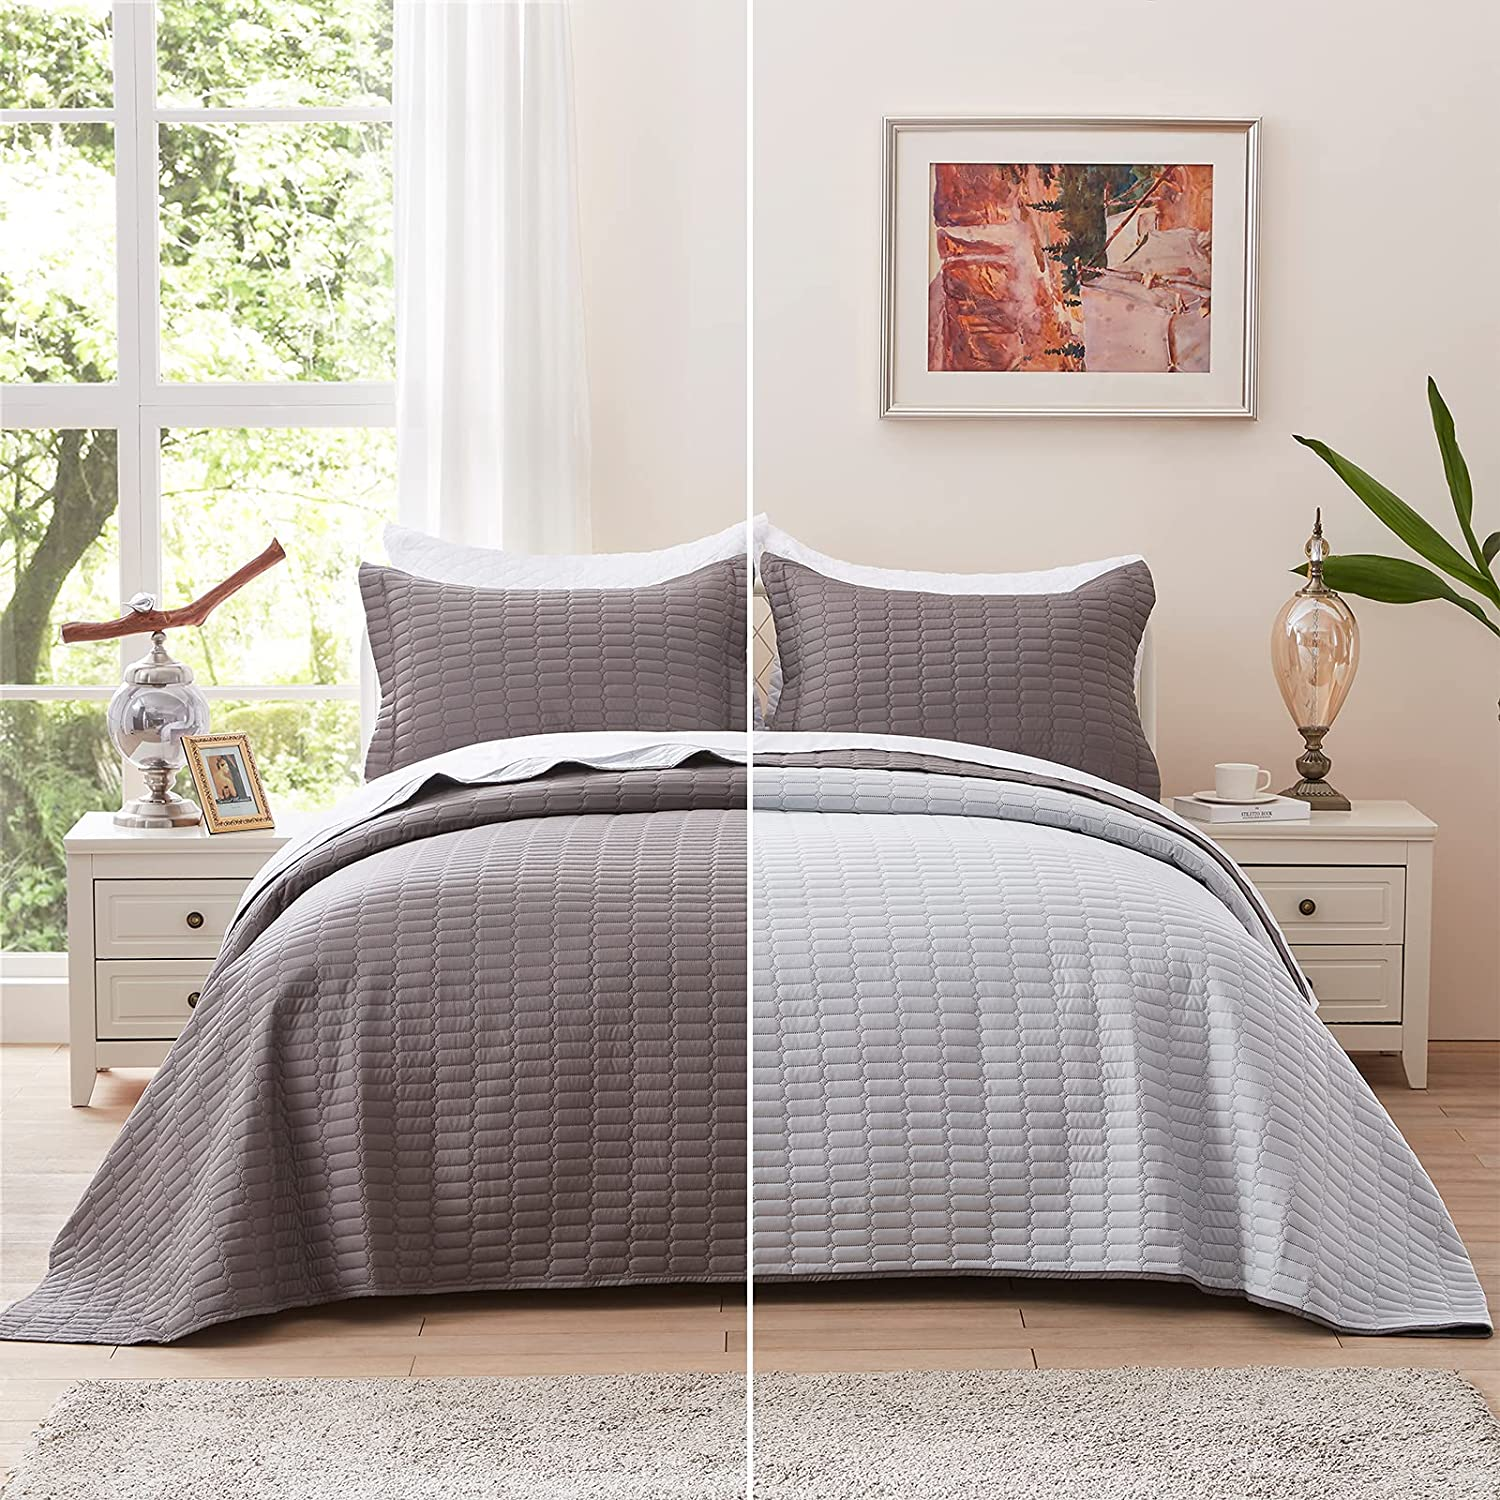 NexHome King Size Mail order Don't miss the campaign cheap Quilt Sets - Bedspread Lightwe Charcoal Grey